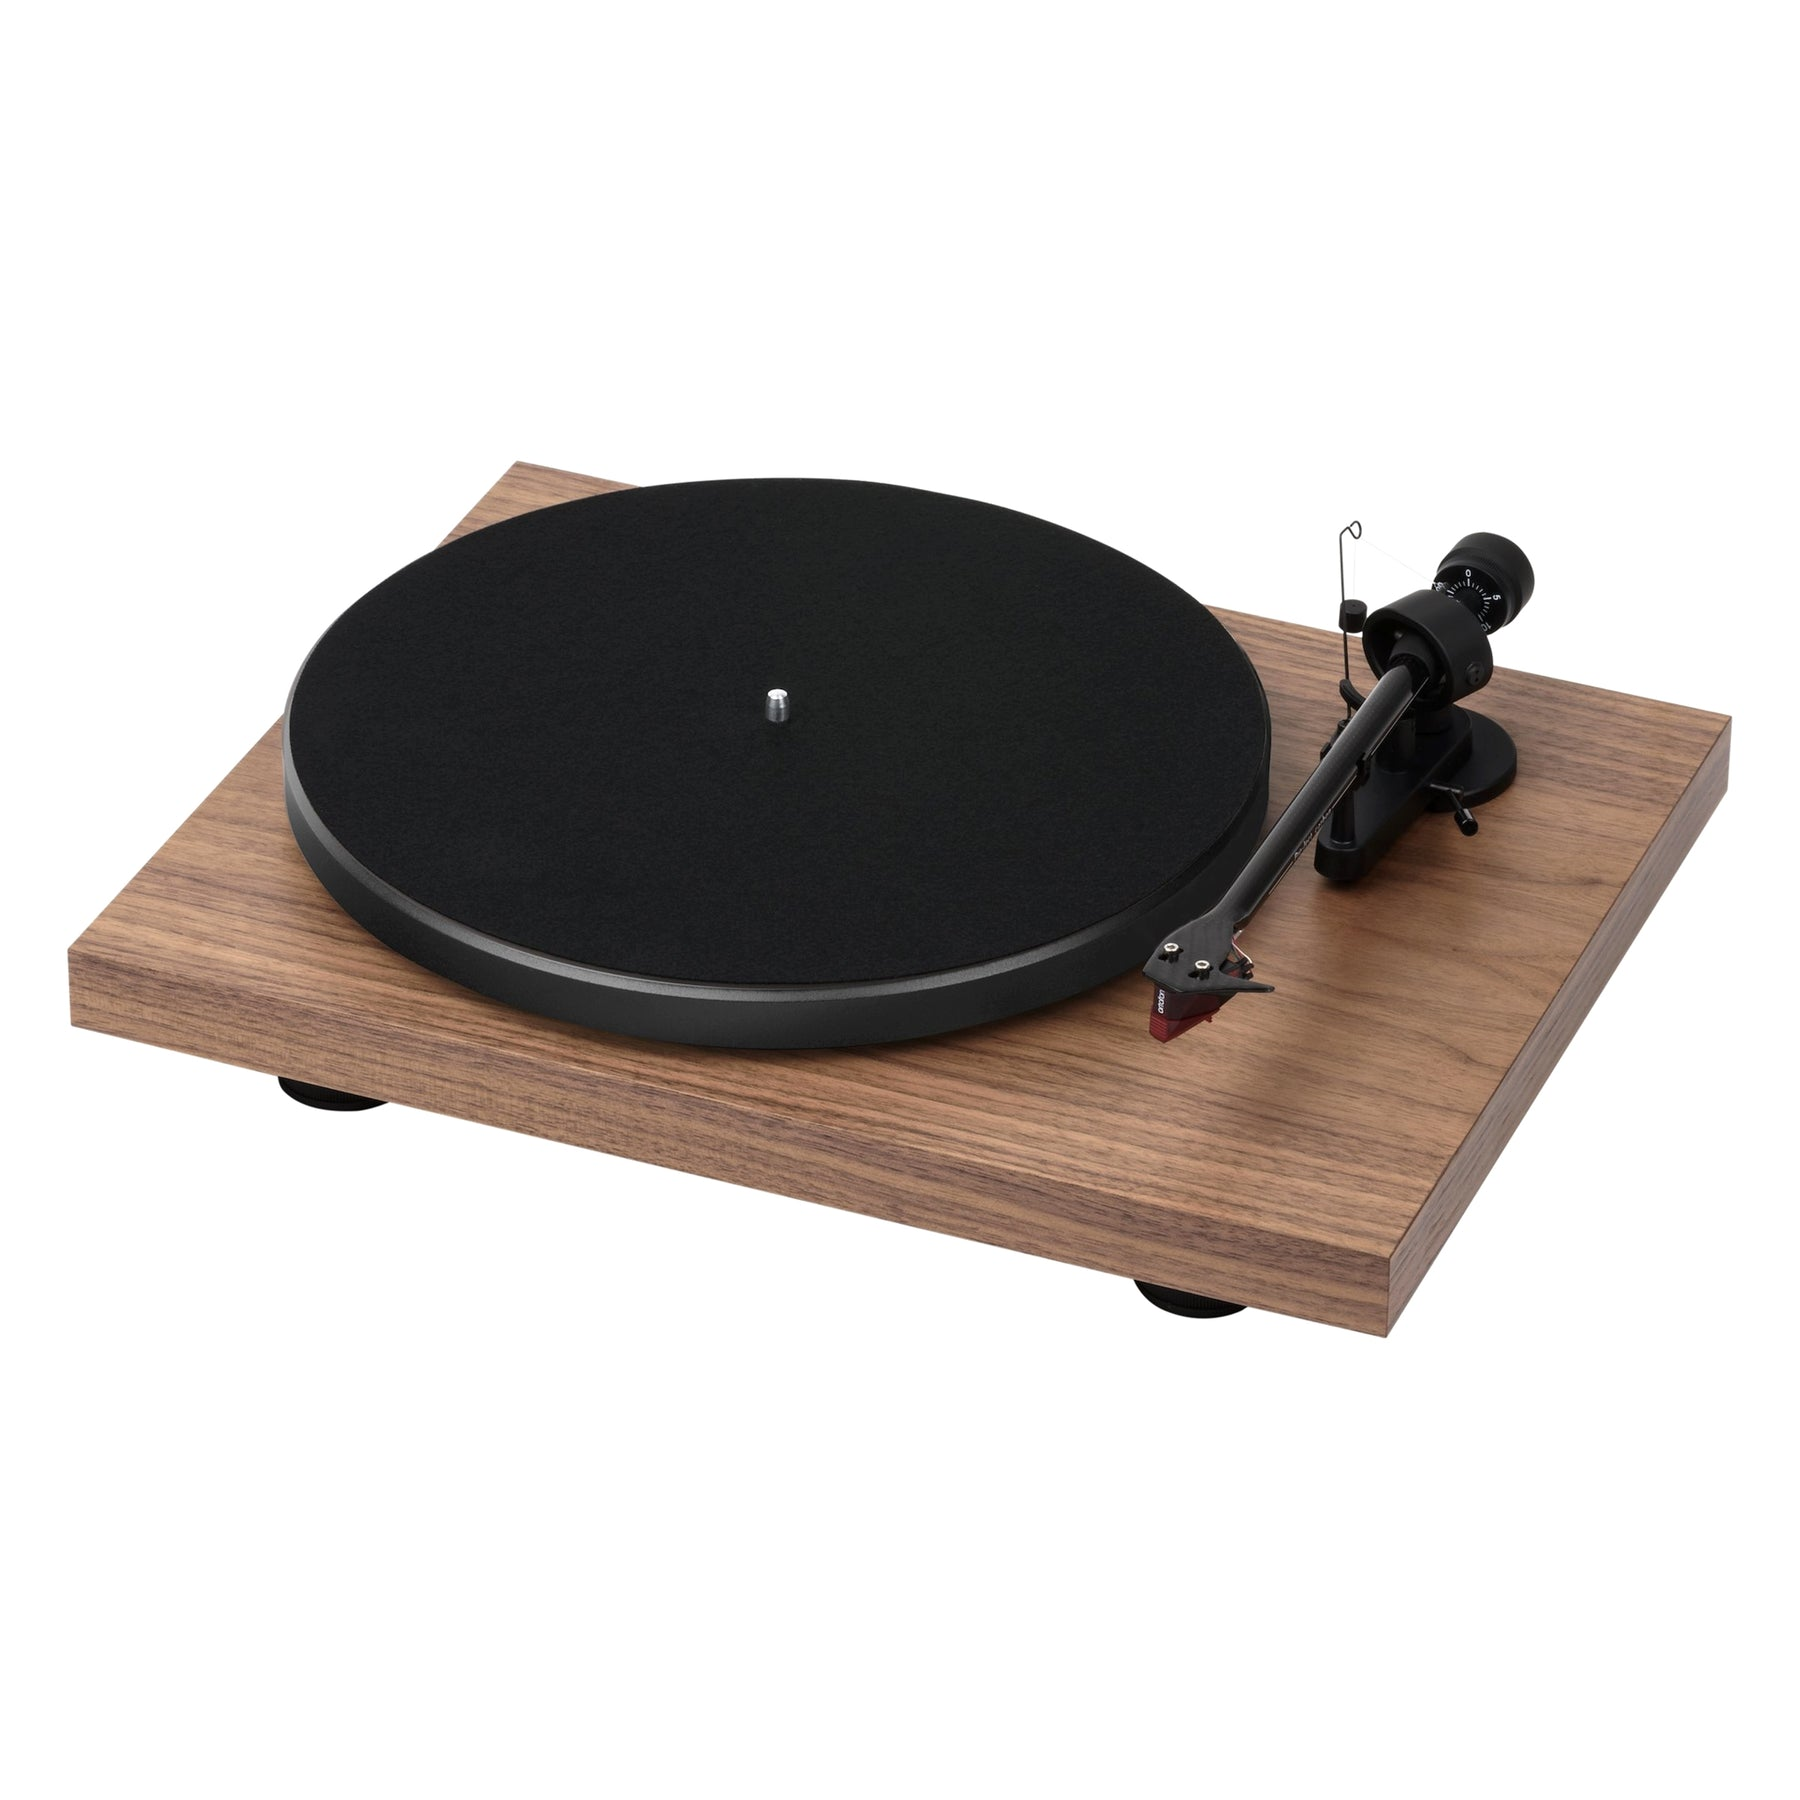 Pro Ject: Debut Carbon DC Turntable Walnut –